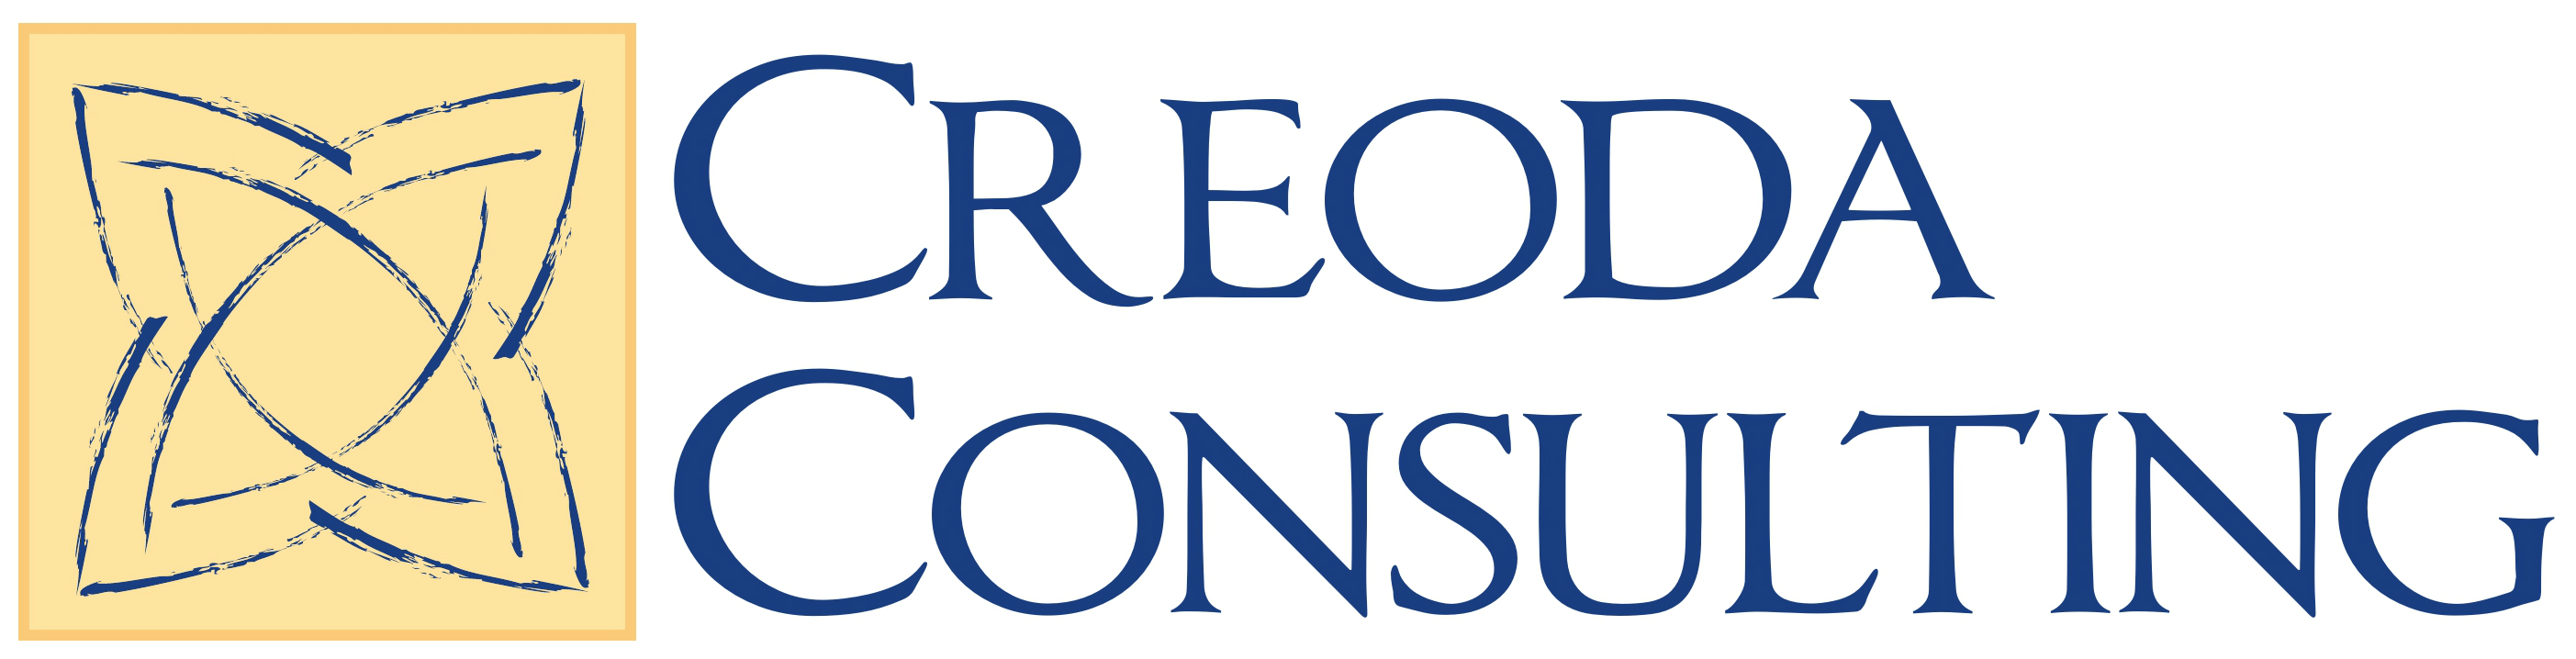 Creoda Consulting